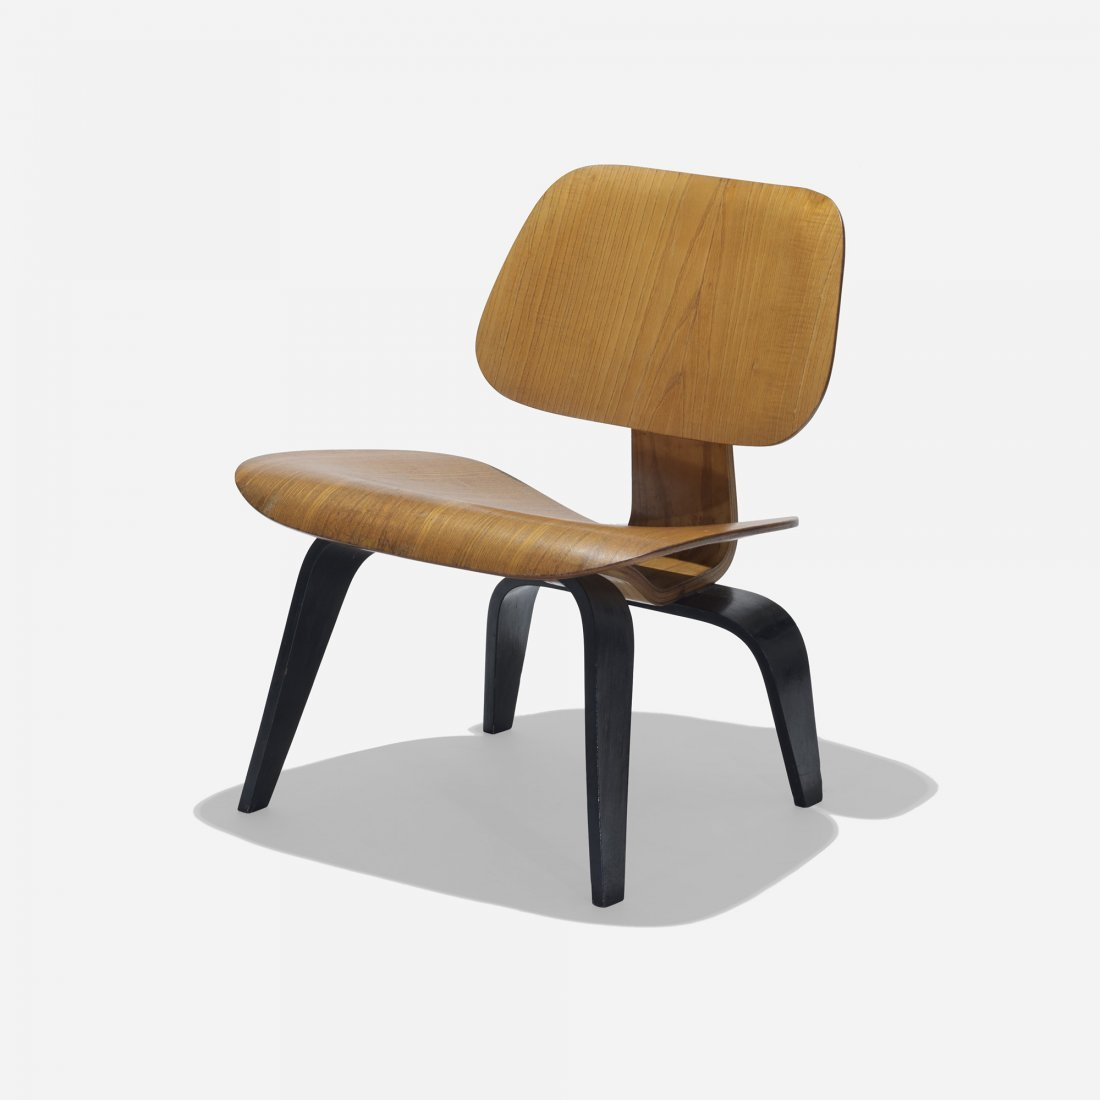 103: Charles and Ray Eames special-order LCW